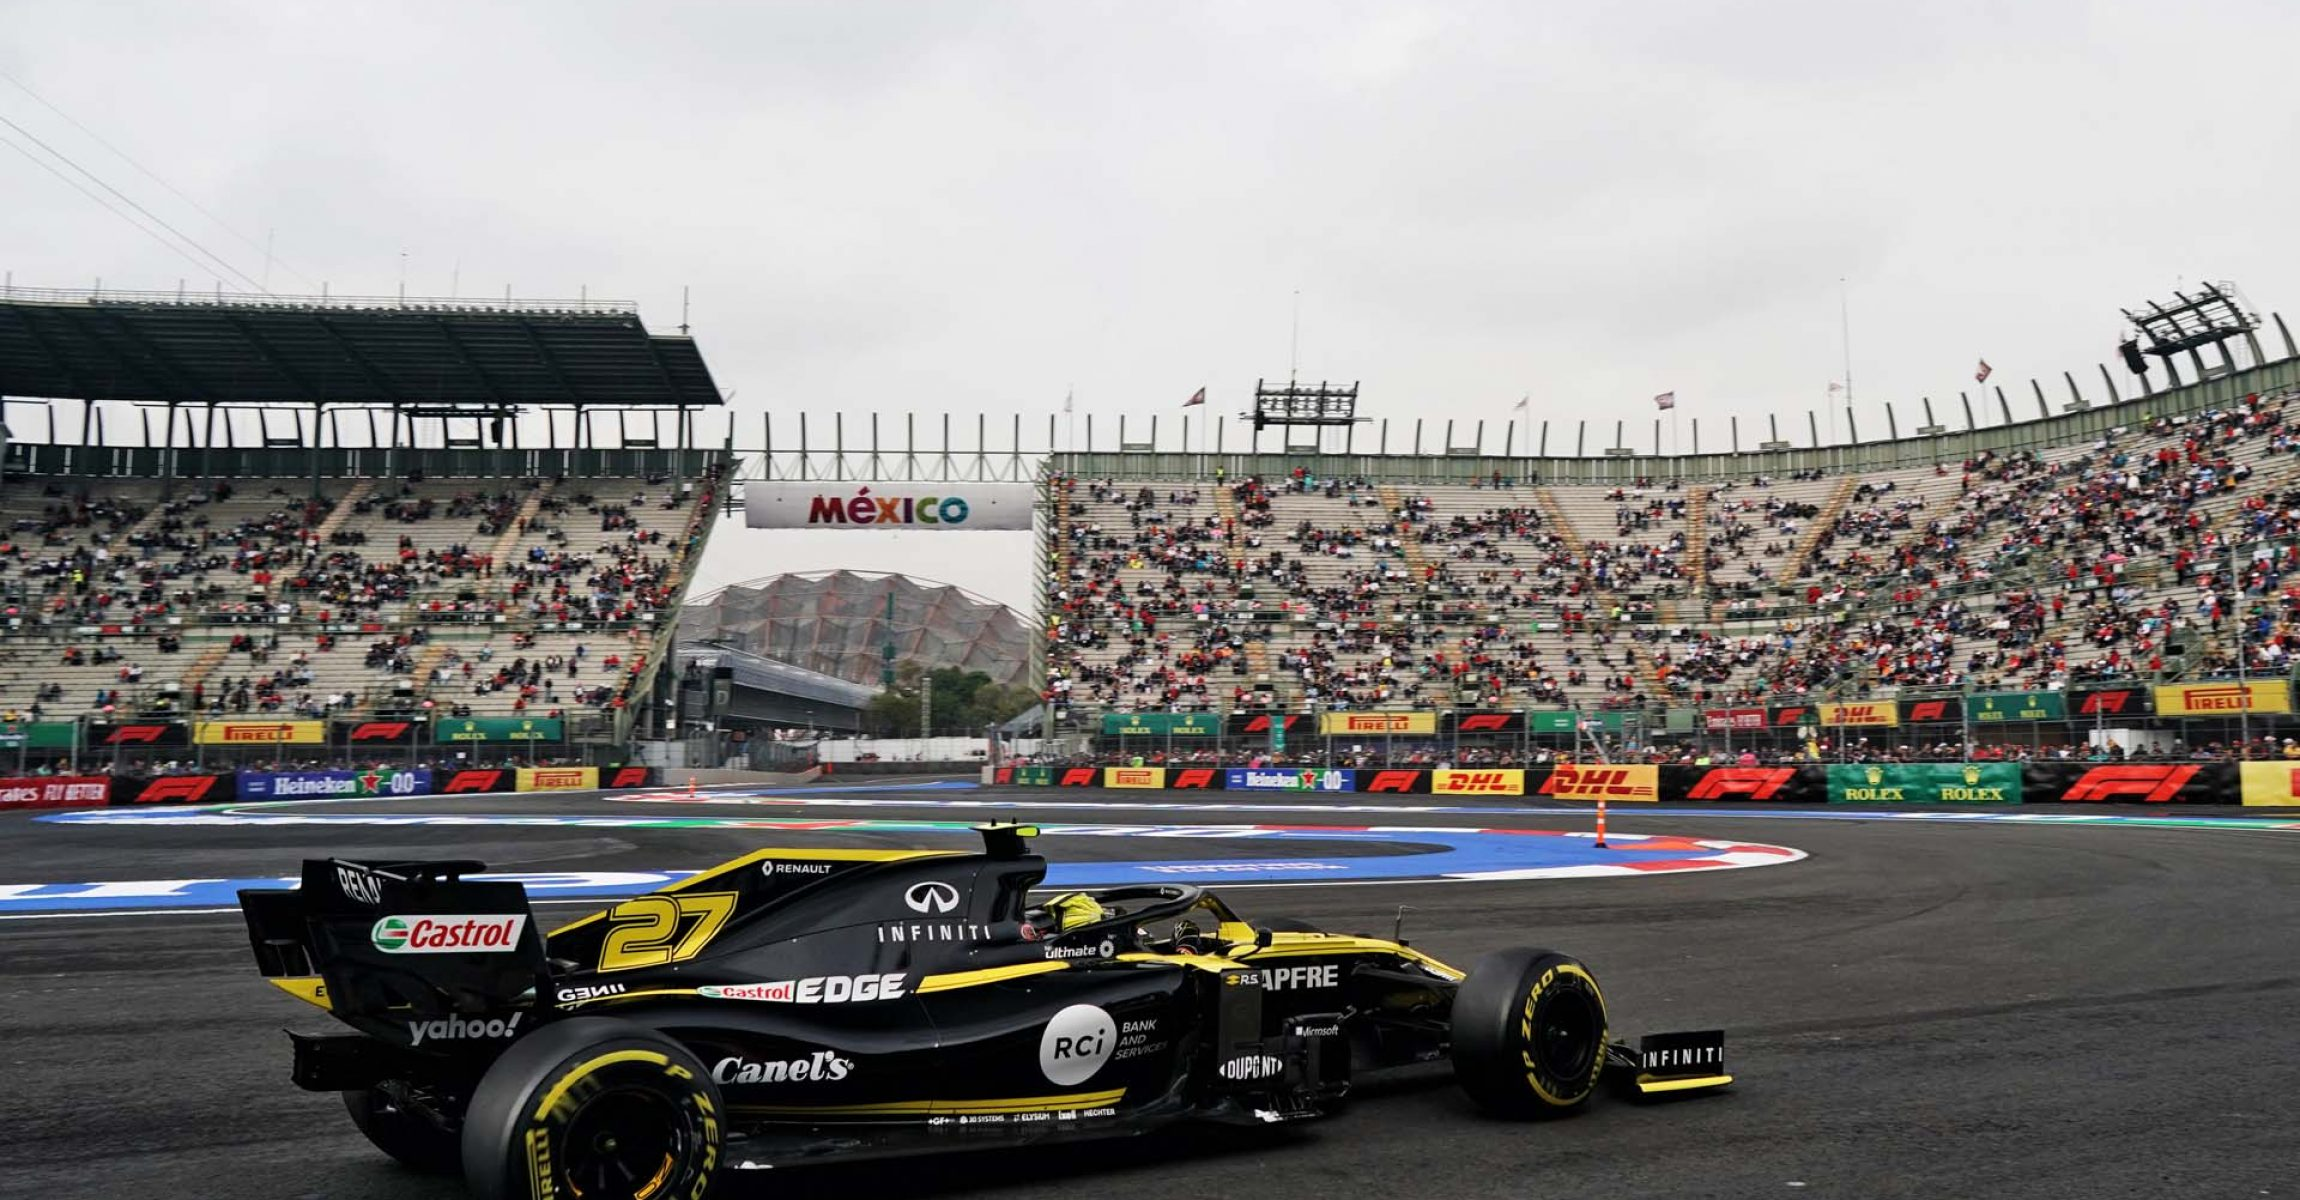 Nico Hülkenberg (GER) Renault F1 Team RS19.                                Mexican Grand Prix, Friday 25th October 2019. Mexico City, Mexico.